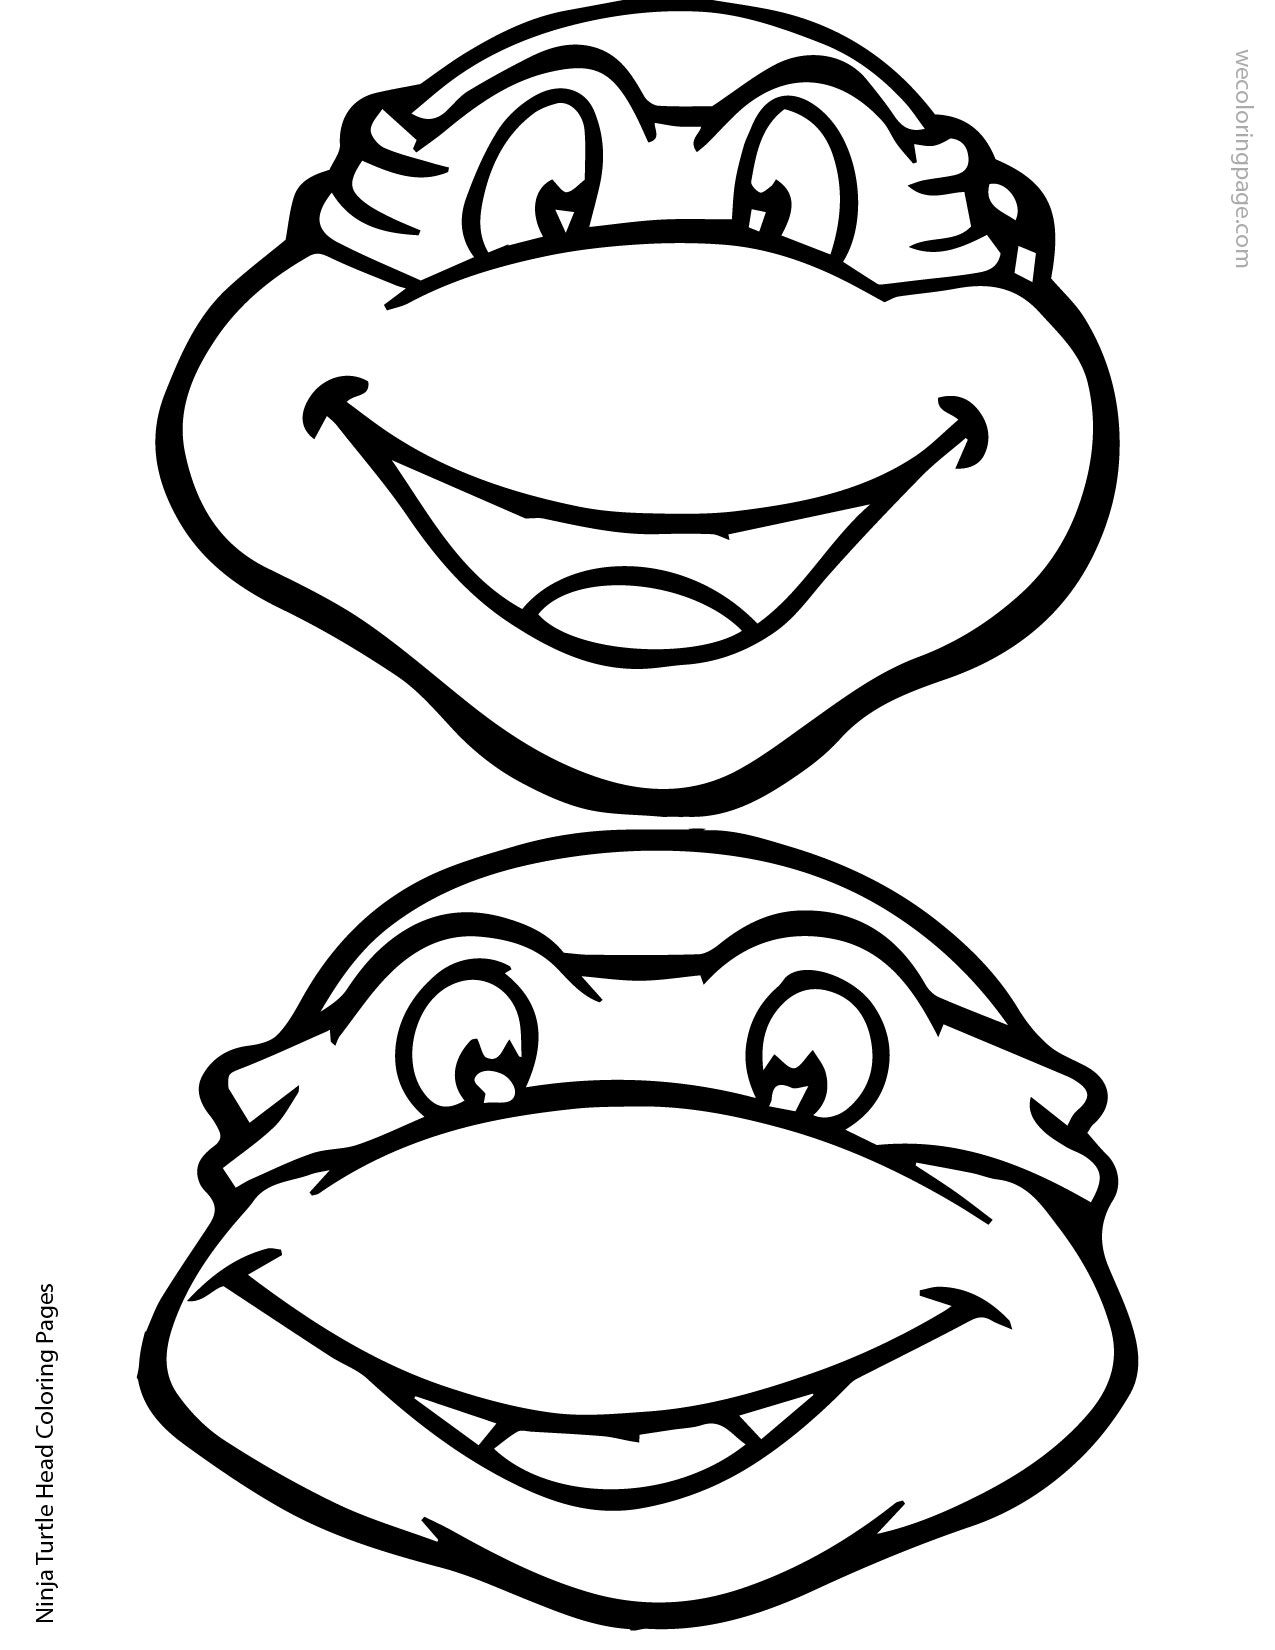 Ninja Turtle Head Coloring Page 02 01 | Elias | Pinterest | Ninjago ...